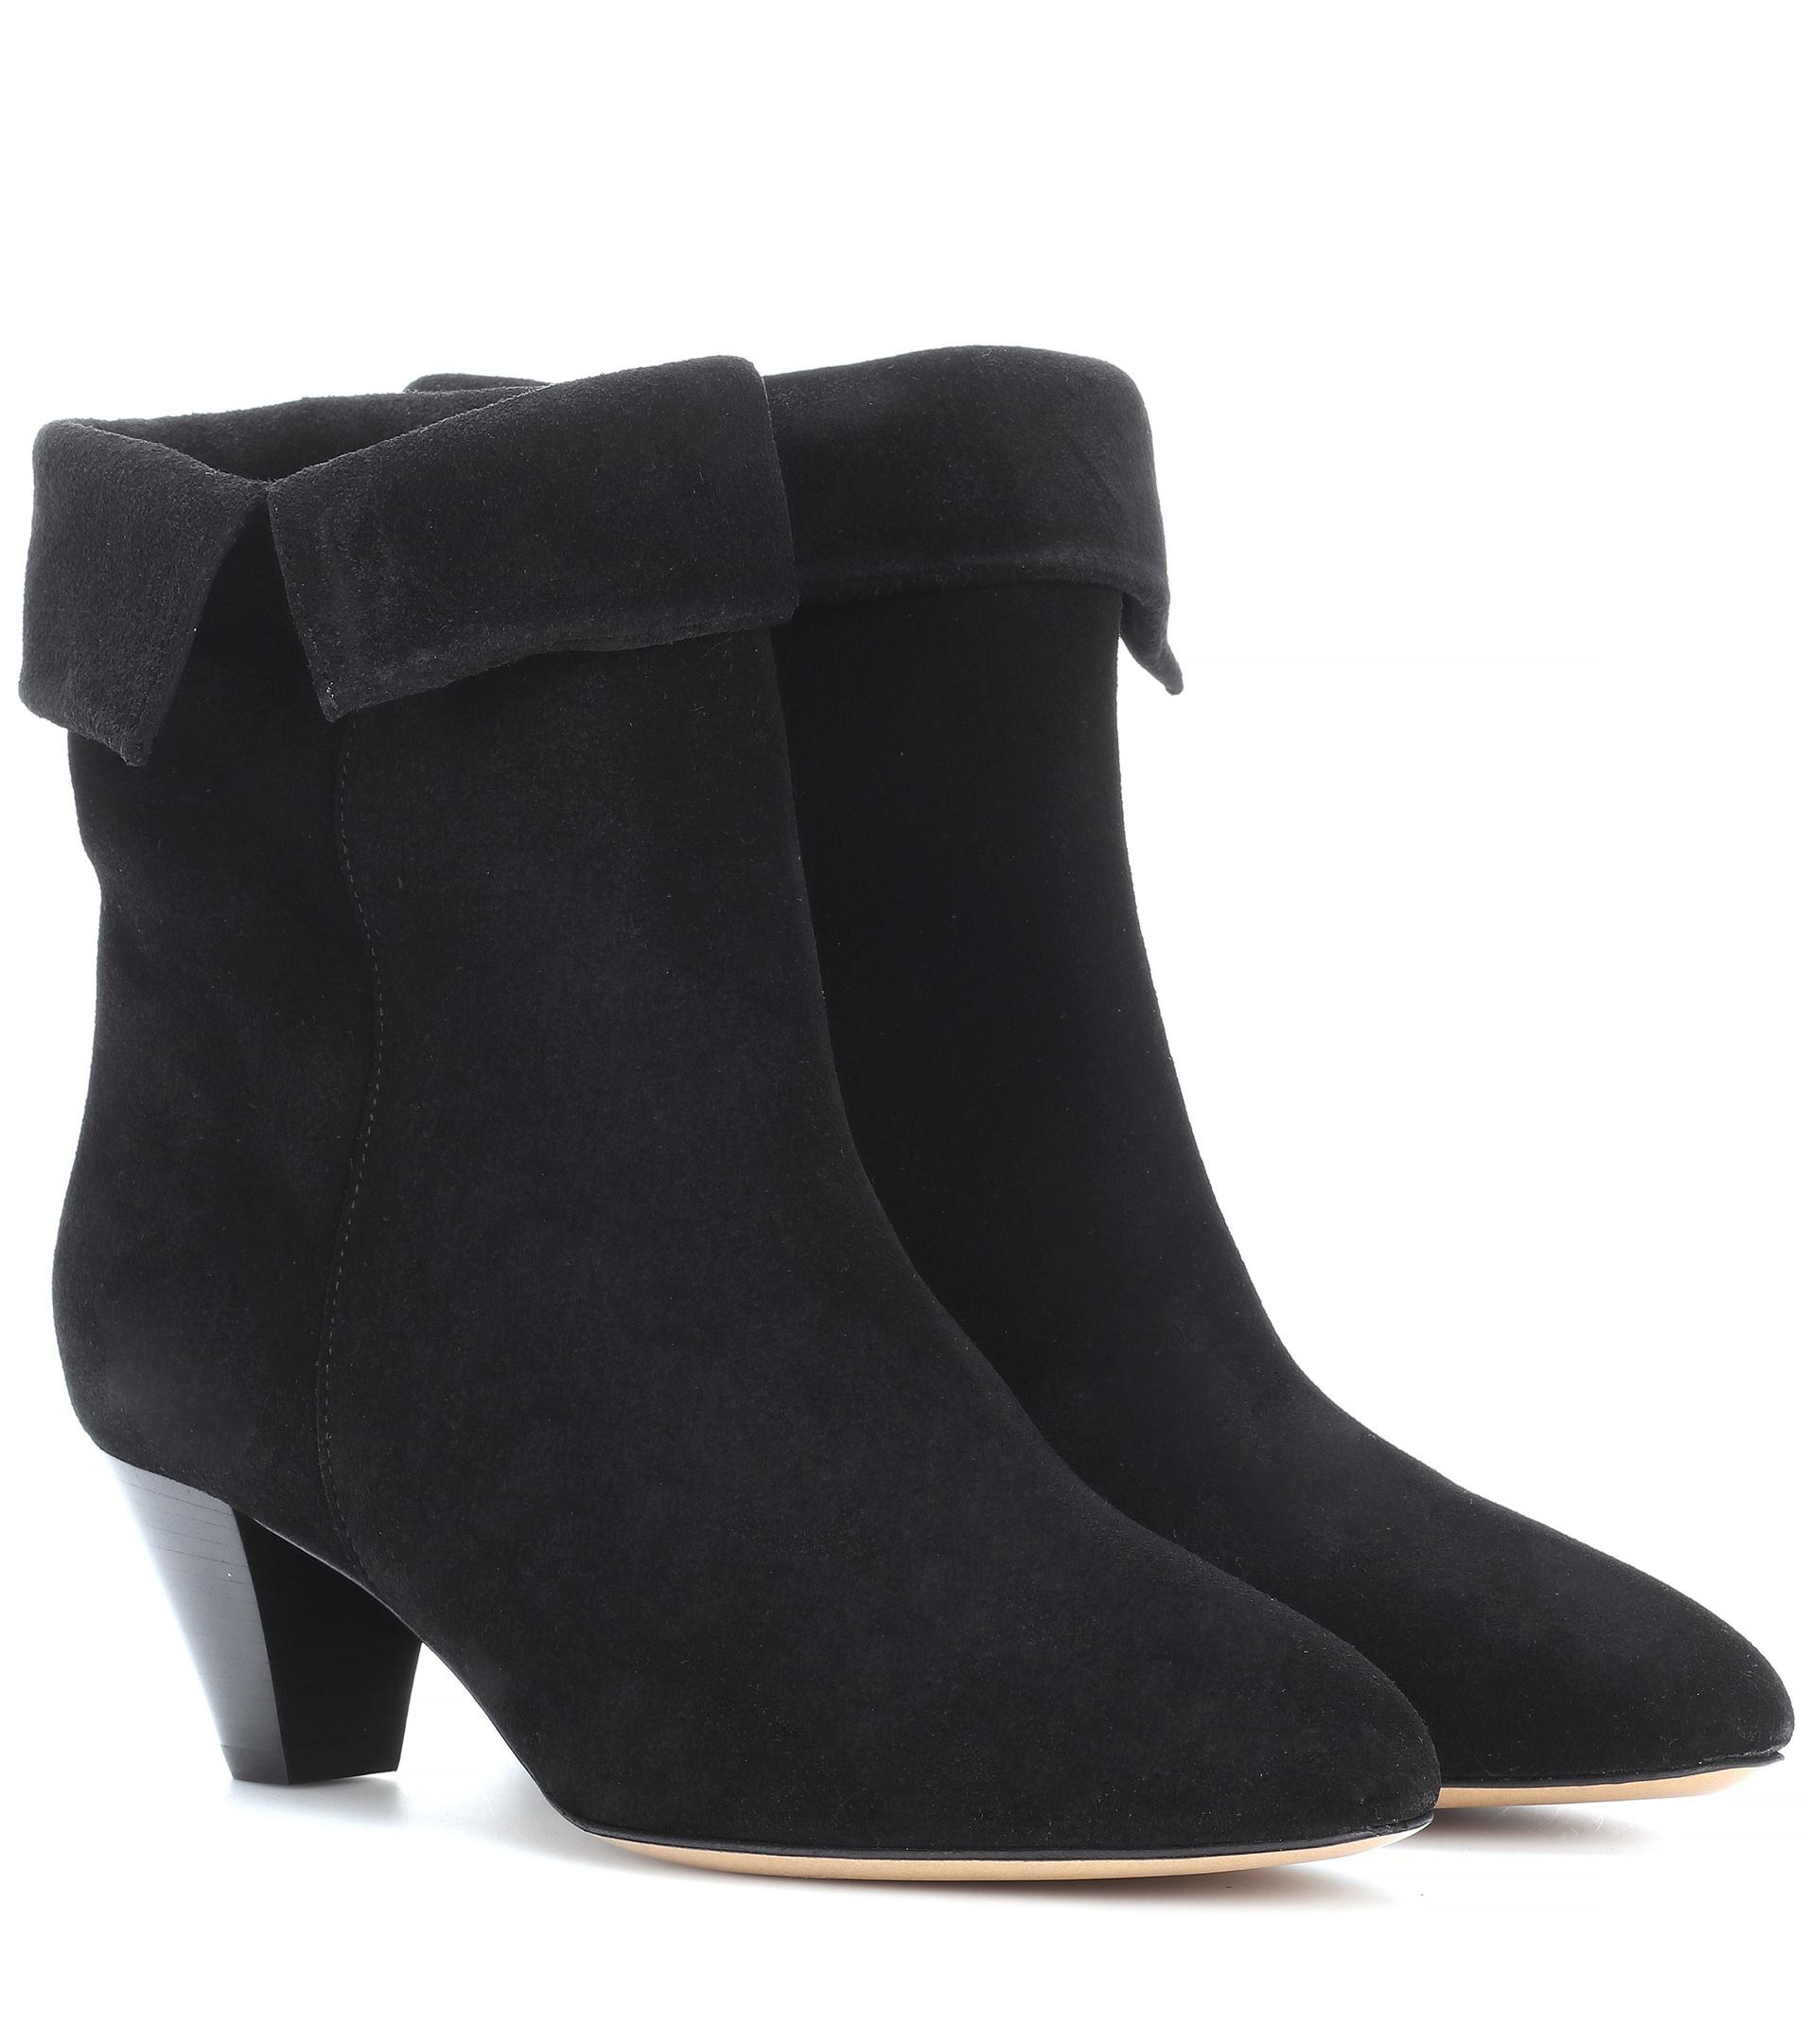 Isabel Marant Women's Derlyn Suede Heeled Ankle Boots - Faded - UK 3 ZpOj7KP